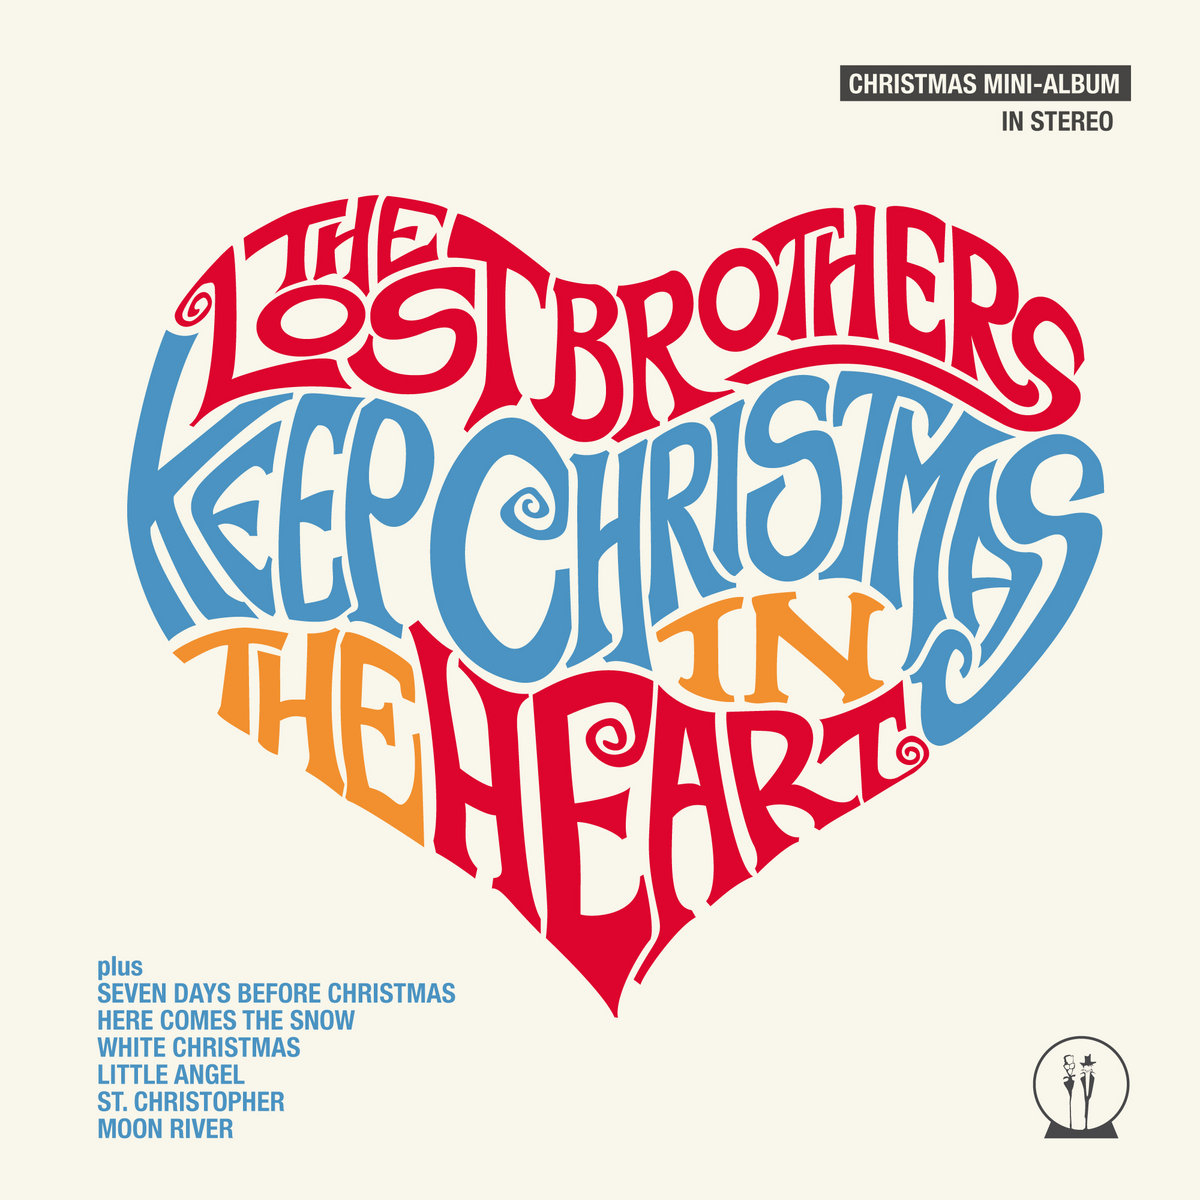 How Many Days Before Christmas.Seven Days Before Christmas The Lost Brothers